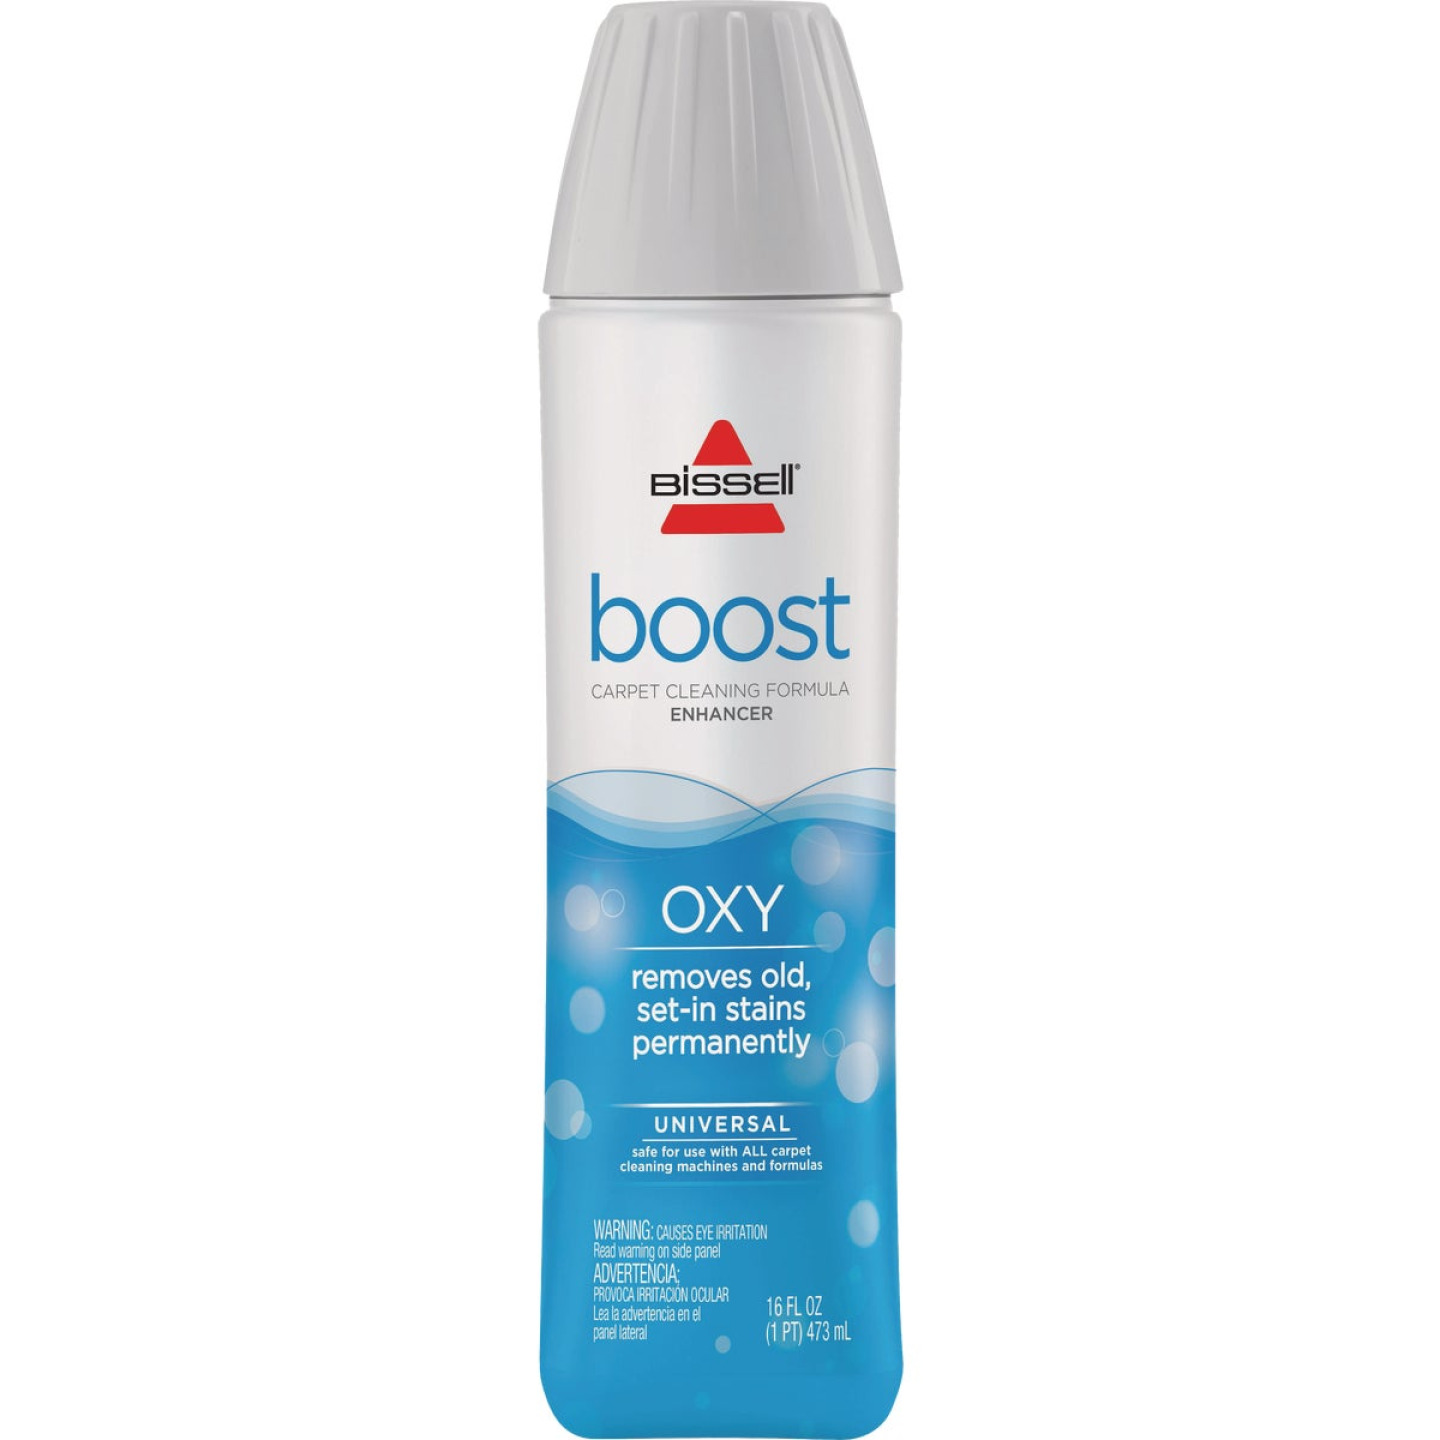 Bissell 16 Oz. Oxy Boost Carpet Cleaning Formula Enhancer Image 1